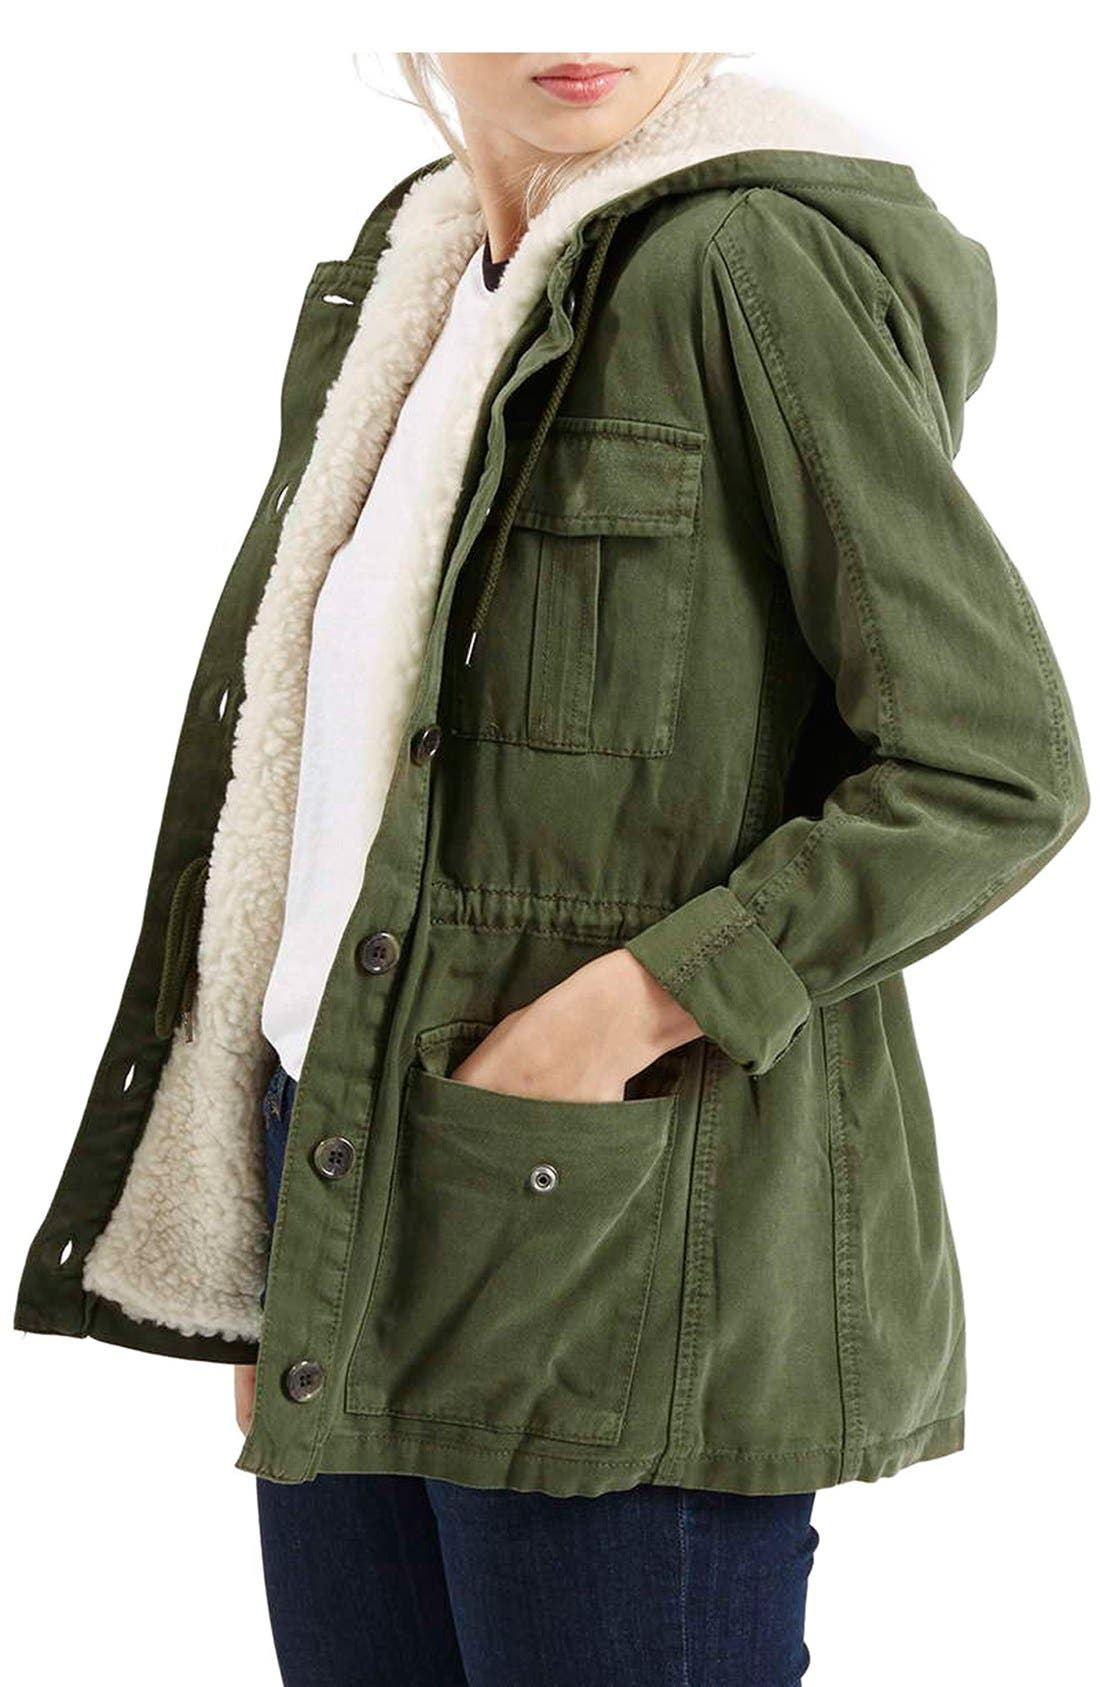 Alternate Image 1 Selected - Topshop 'Esme' Faux Fur Lined Parka